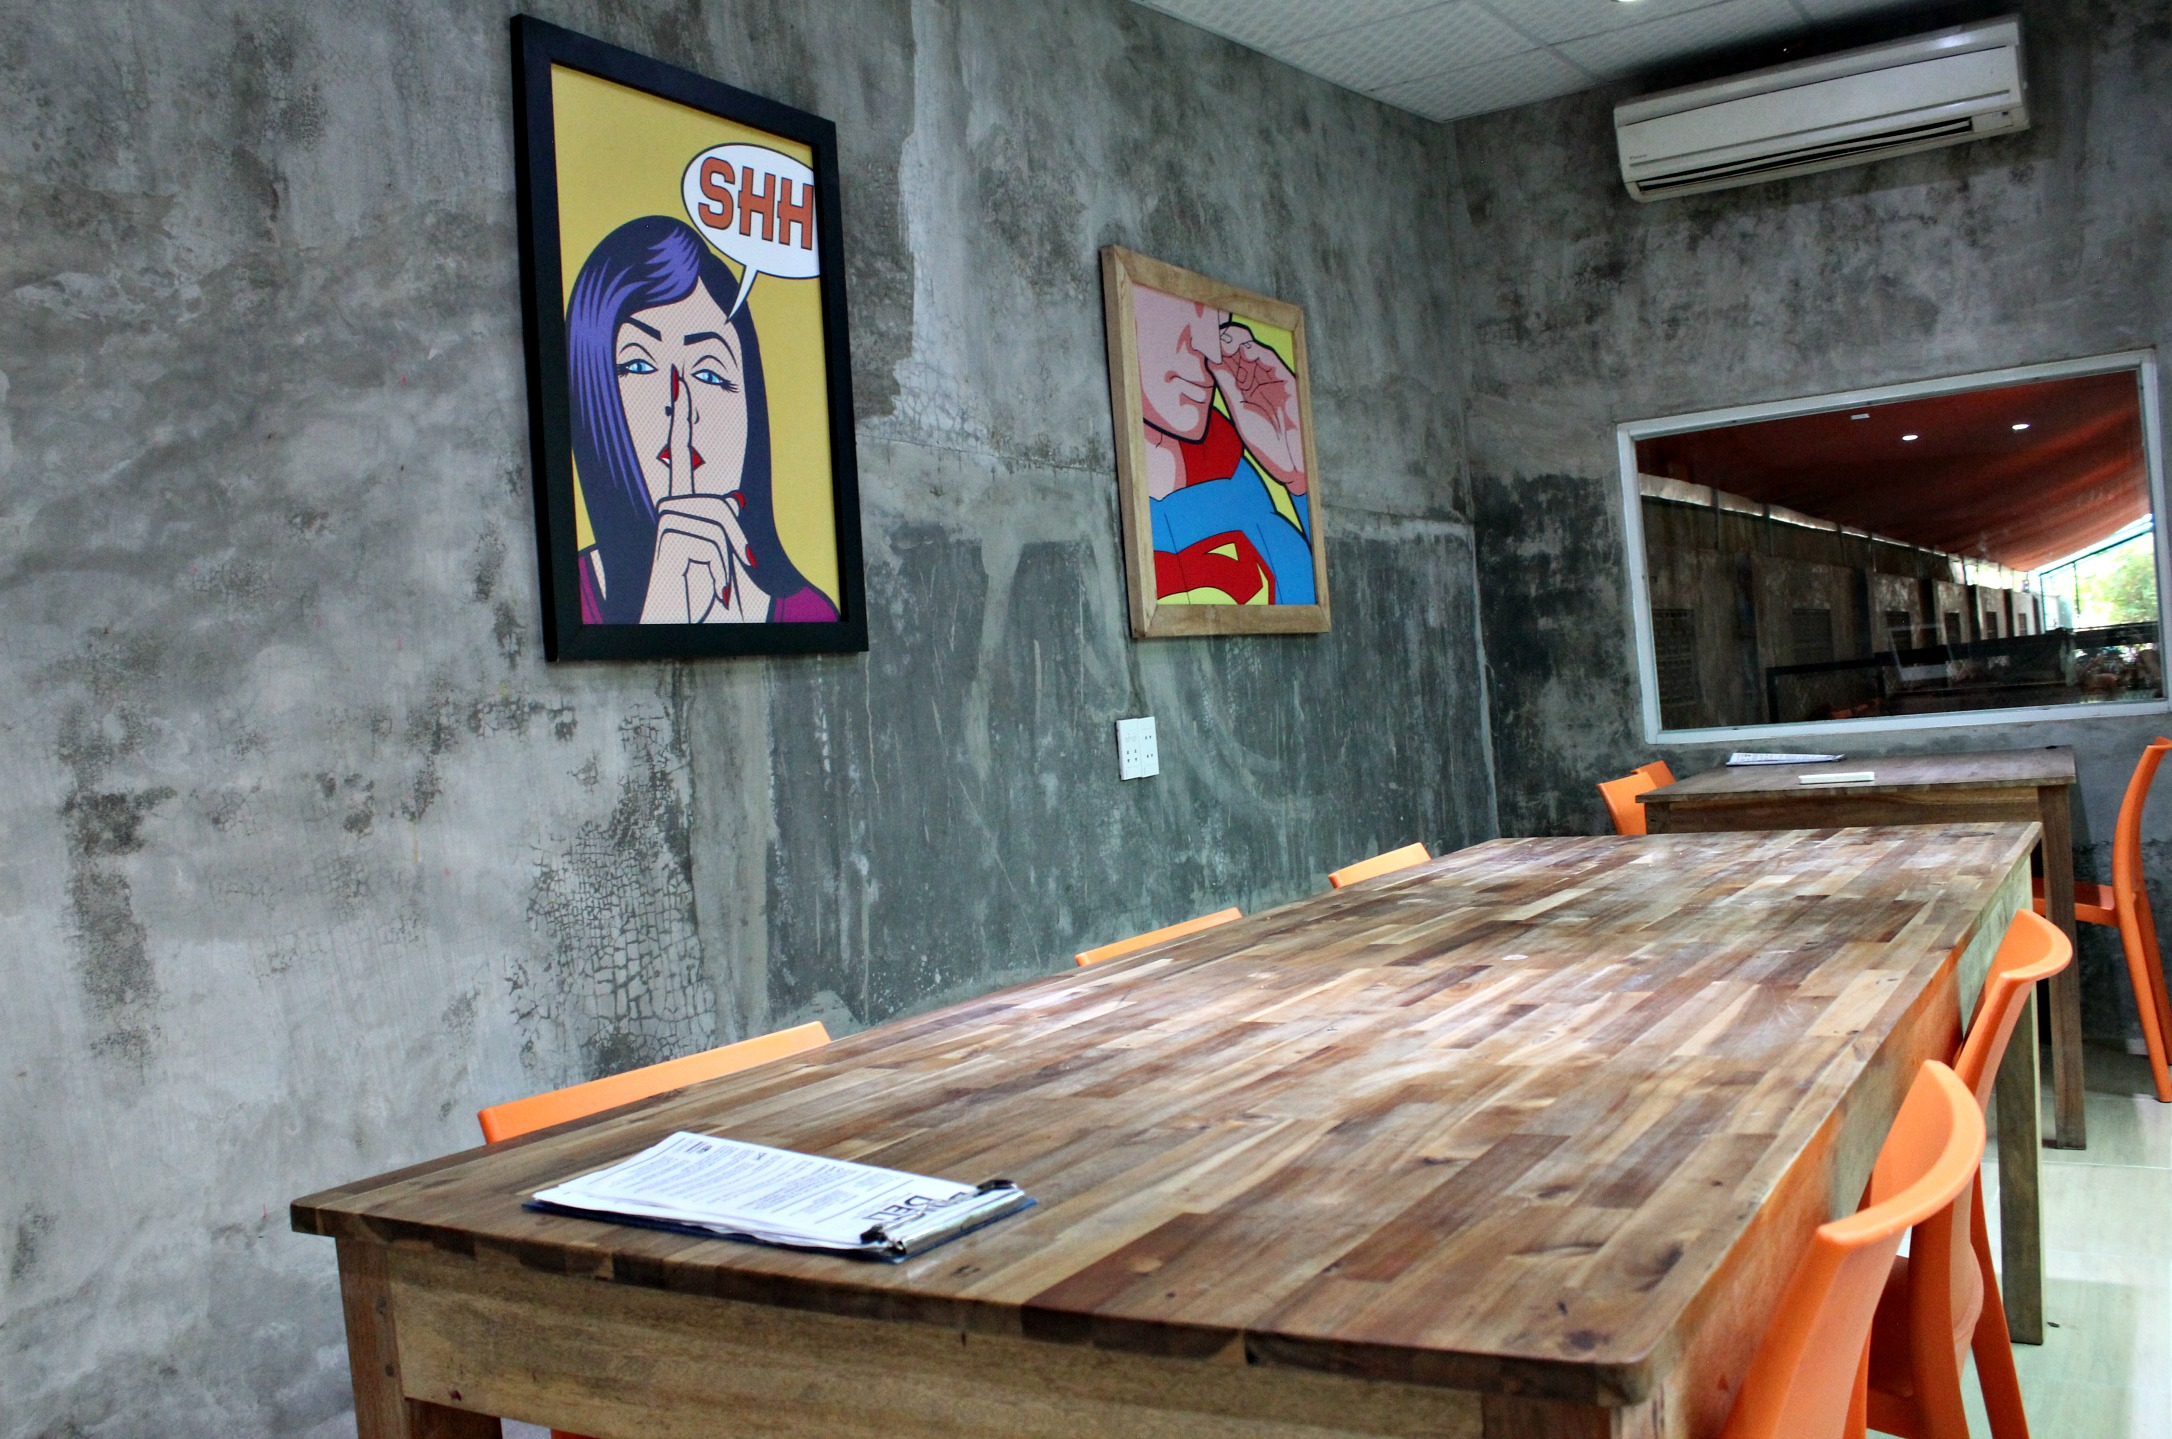 co-working space provided away from the central Dingo Deli cafe